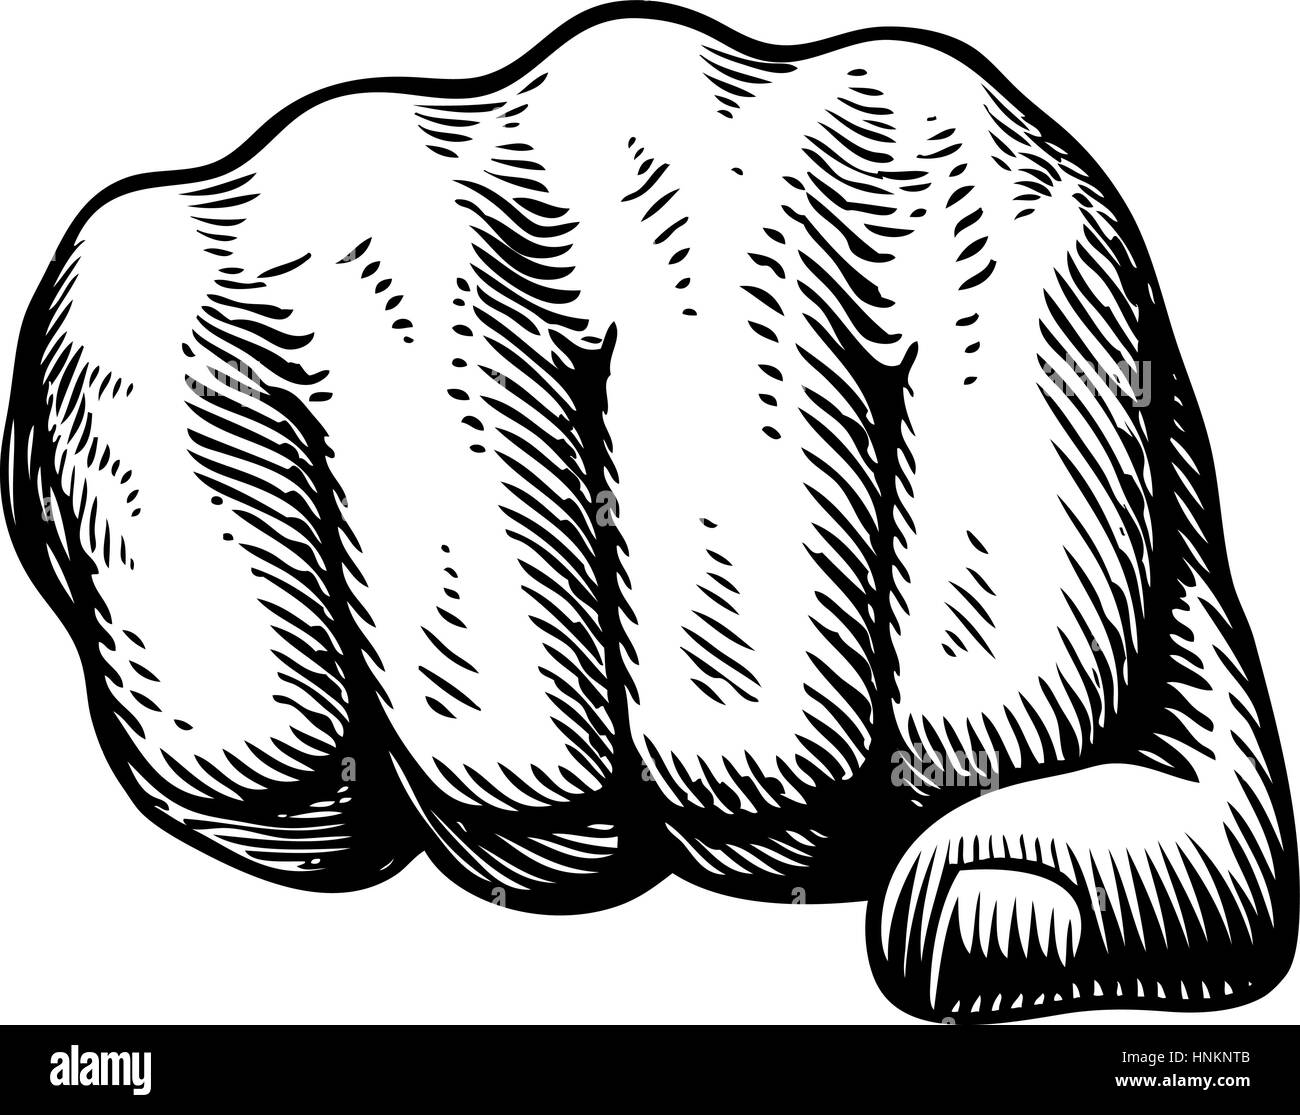 Fist, hand gesture sketch. Punch symbol. Vector illustration isolated on white background - Stock Image